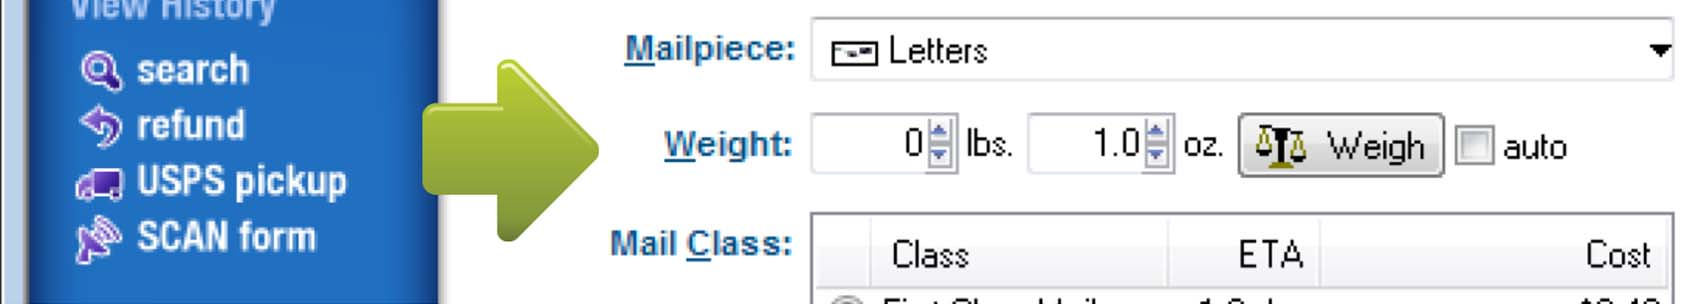 first class mail is by far the most popular usps mail class for letters